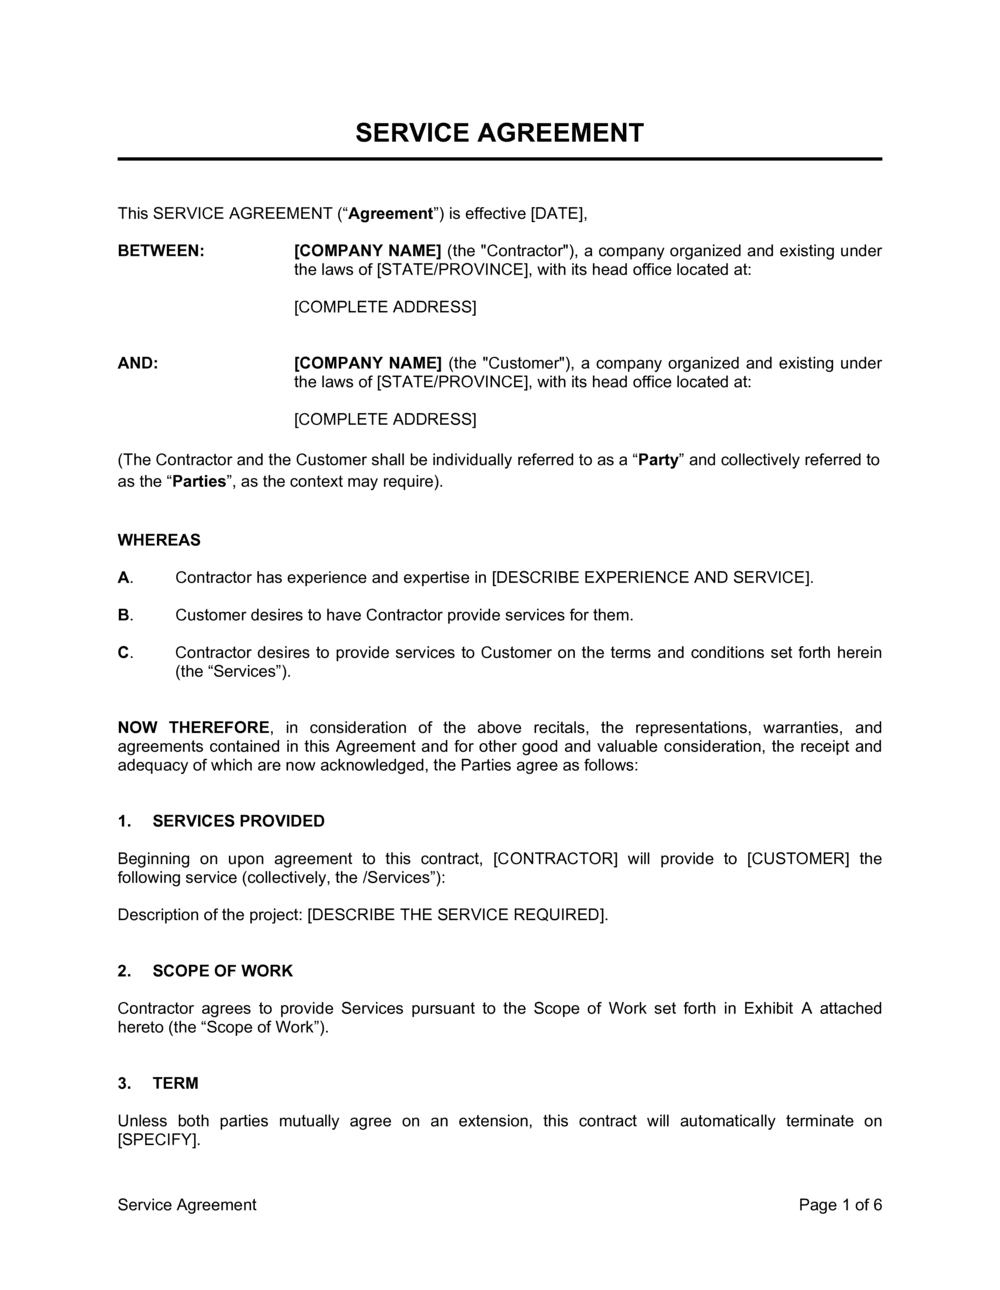 Business-in-a-Box's Service Agreement Template